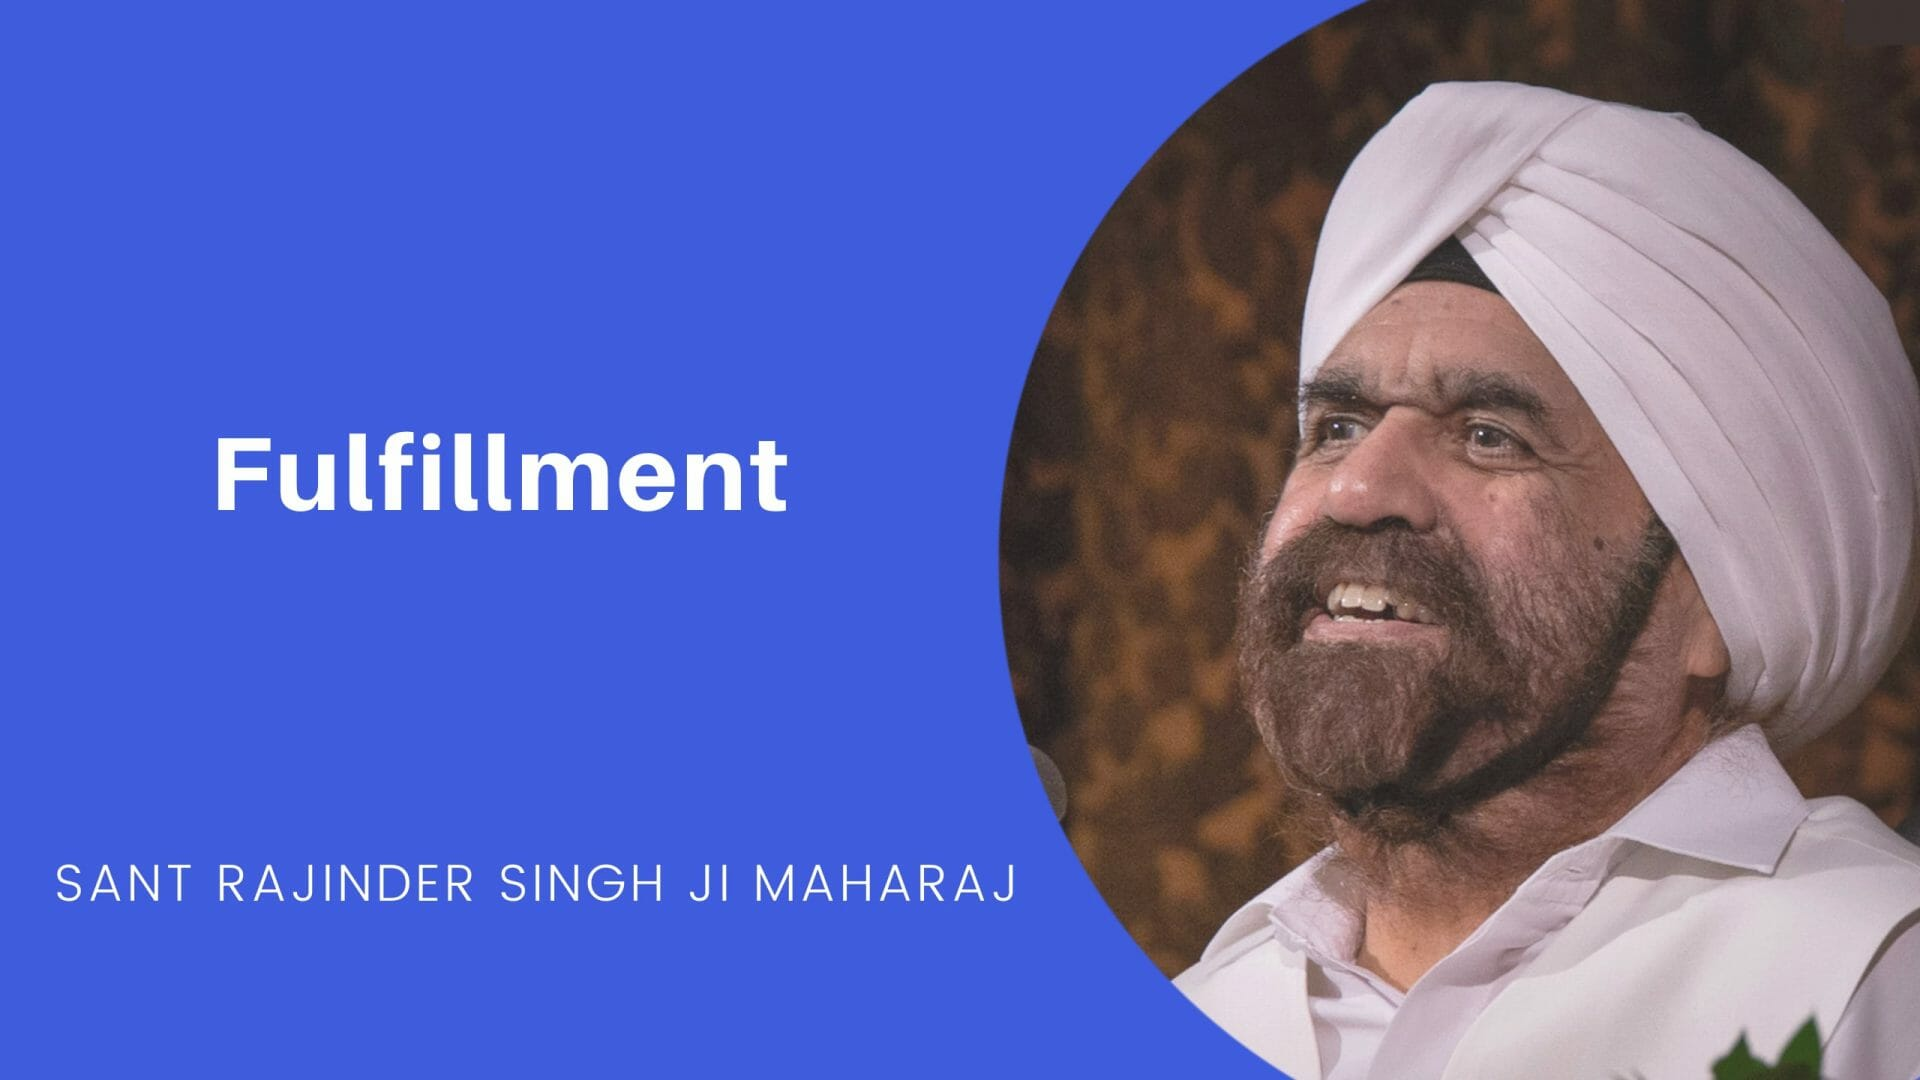 Fulfillment - an excerpt from a talk by Sant Rajinder Singh Ji Maharaj